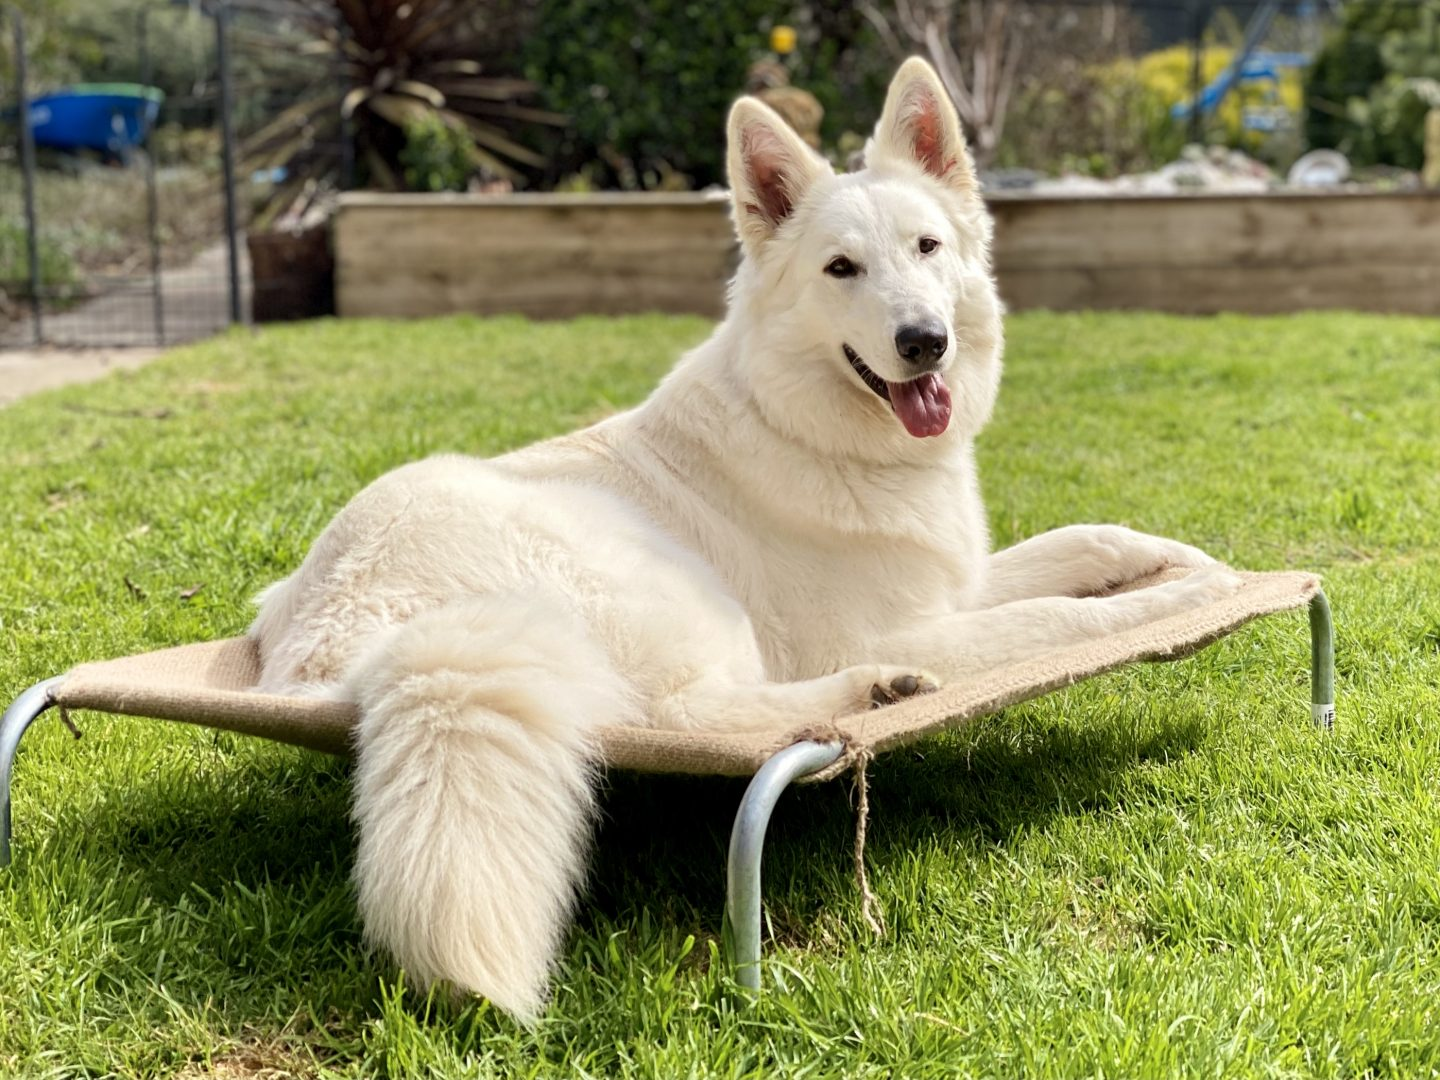 dog trainer, training with tamara ,dog training, puppy training, online dog training, dog walking, dog walker adelaide, trick training for dogs, how to train puppy, best friends, best friend dog training, white shepherd, white dog